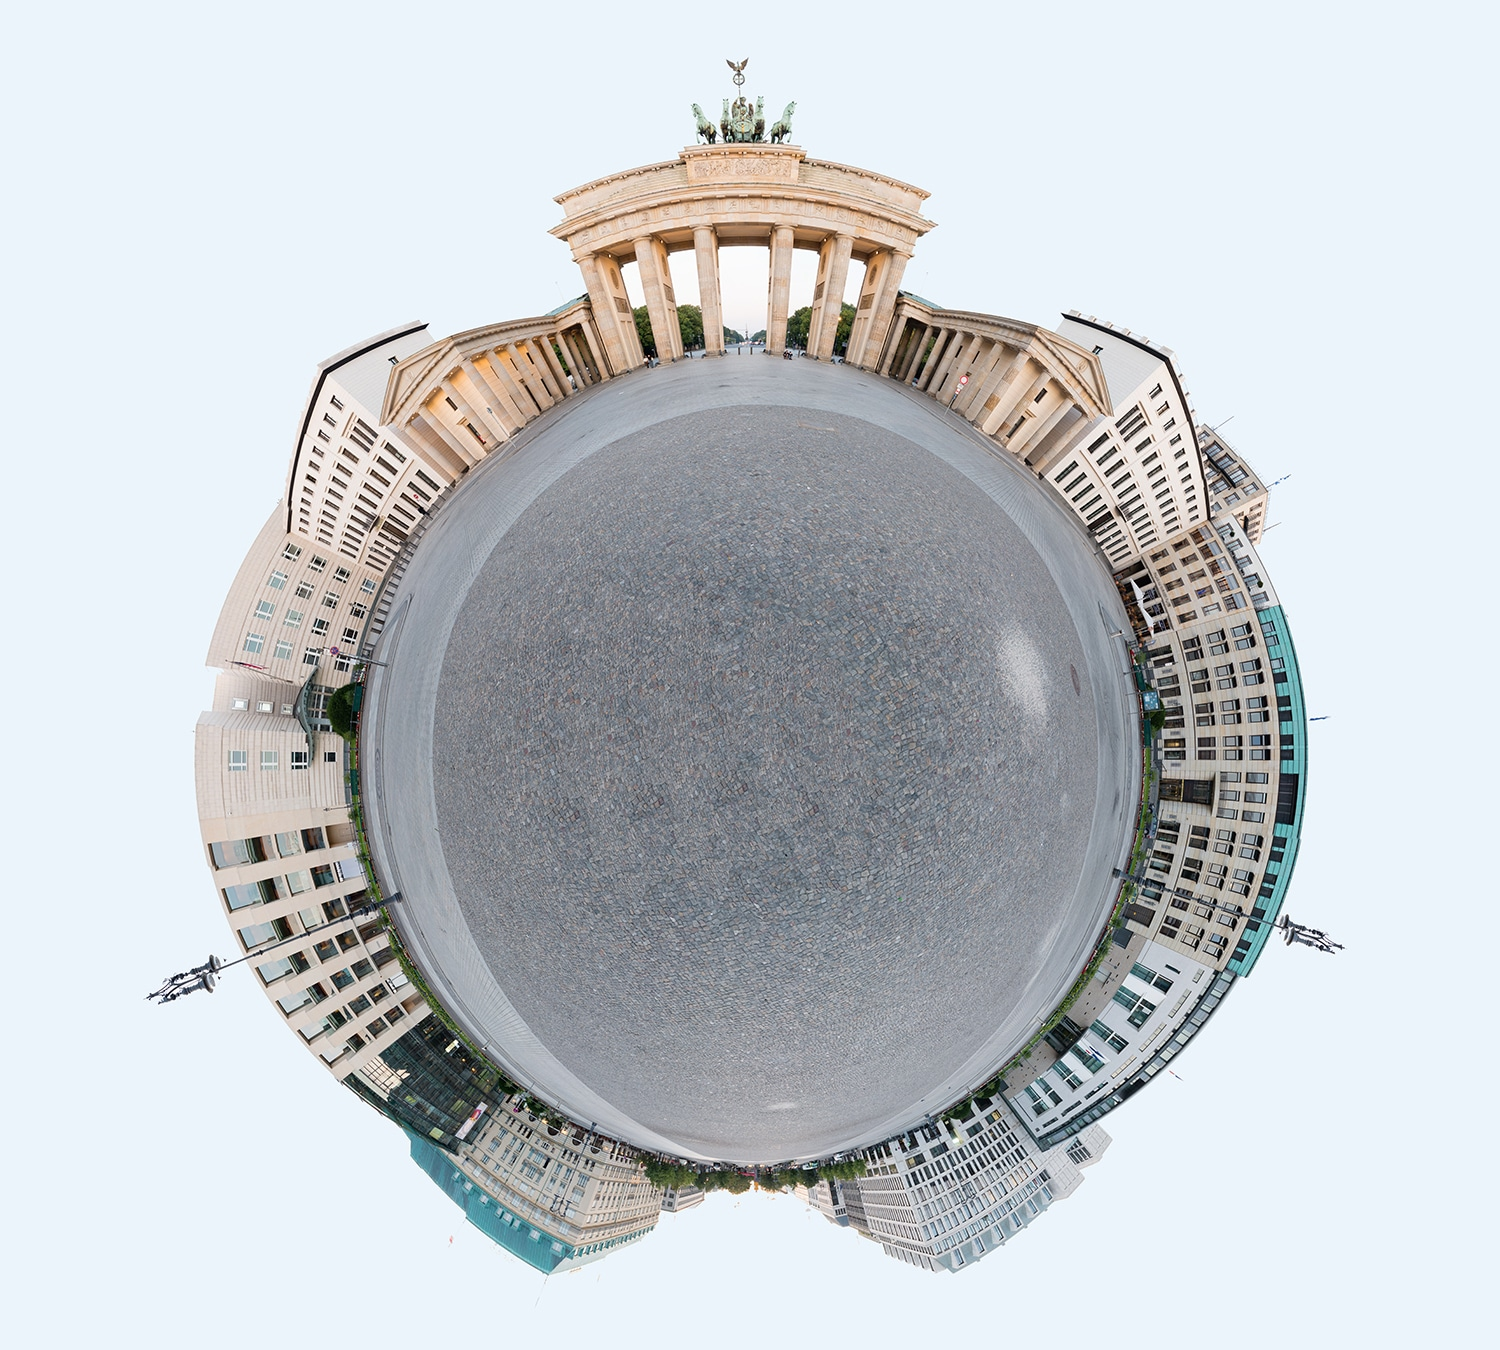 Panorama Berlin Brandenburger Tor (Little Planet), (Foto copyright - Frank Weber - Berlin - www.fotologbuch.de)